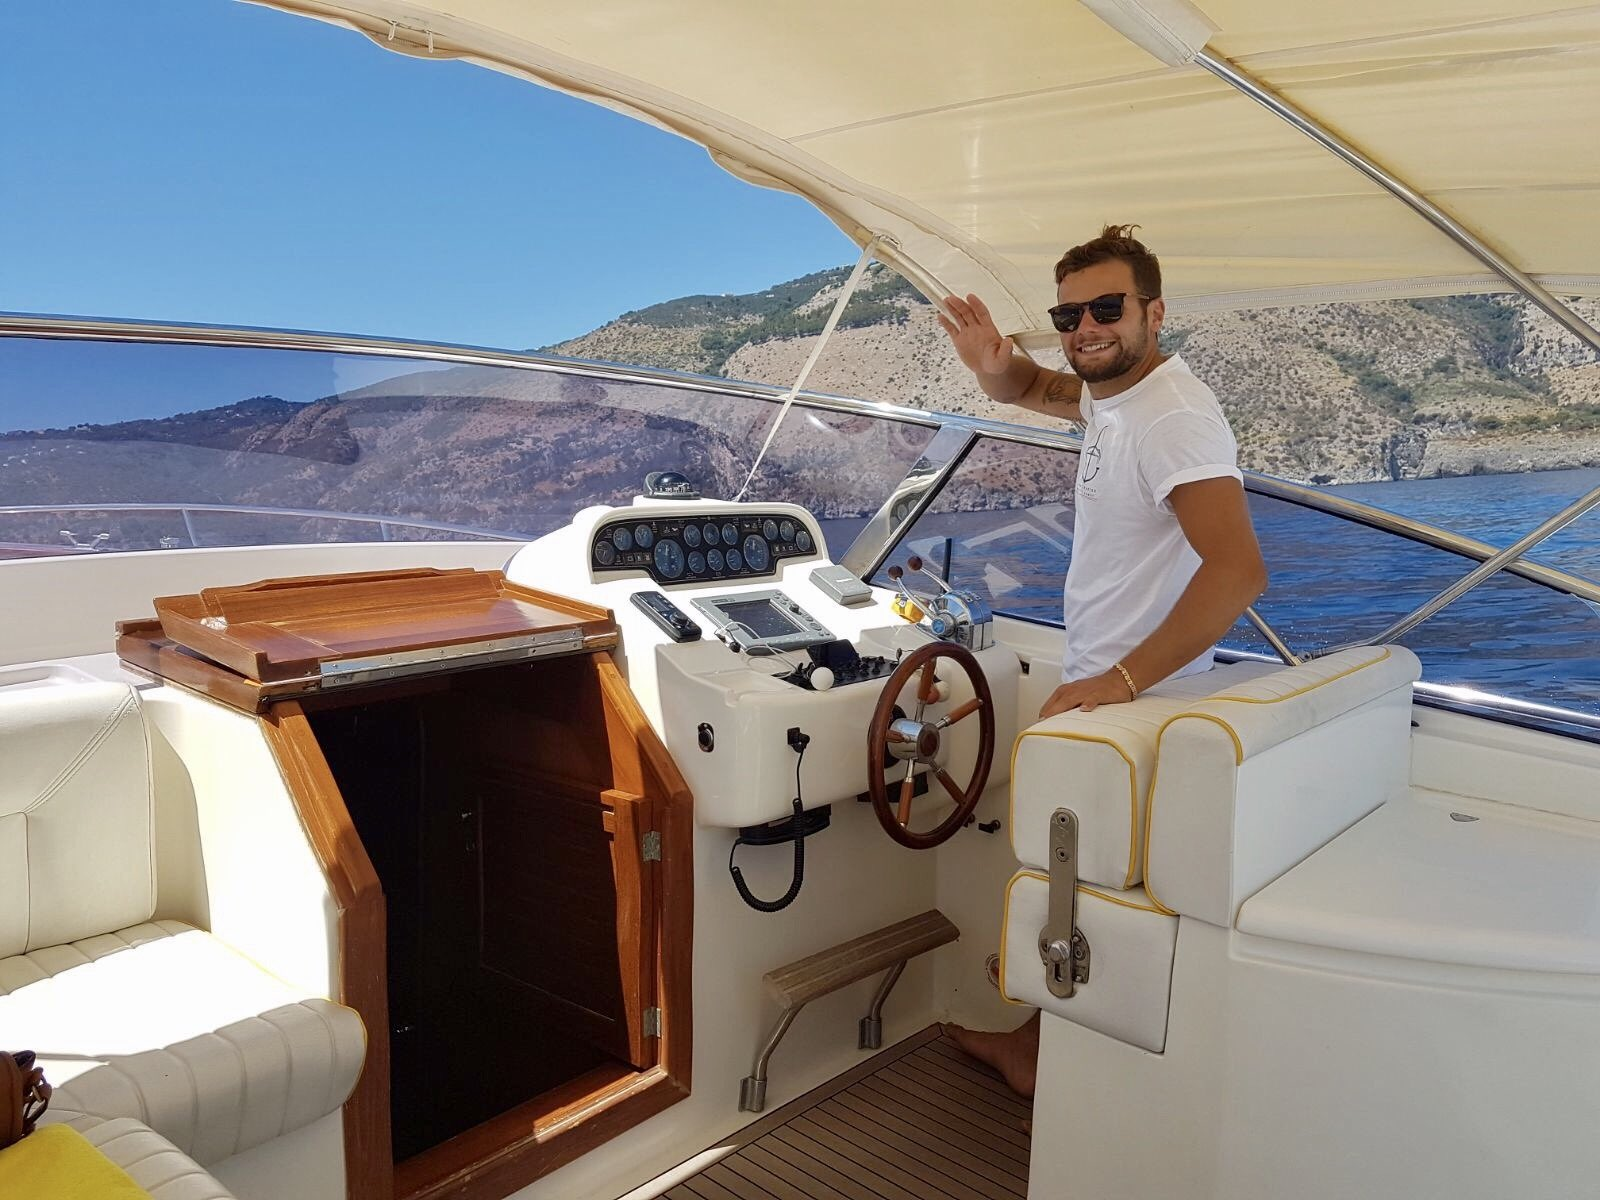 The captain and guide for sea tours and boat excursions in Amalfi Coast: Luca